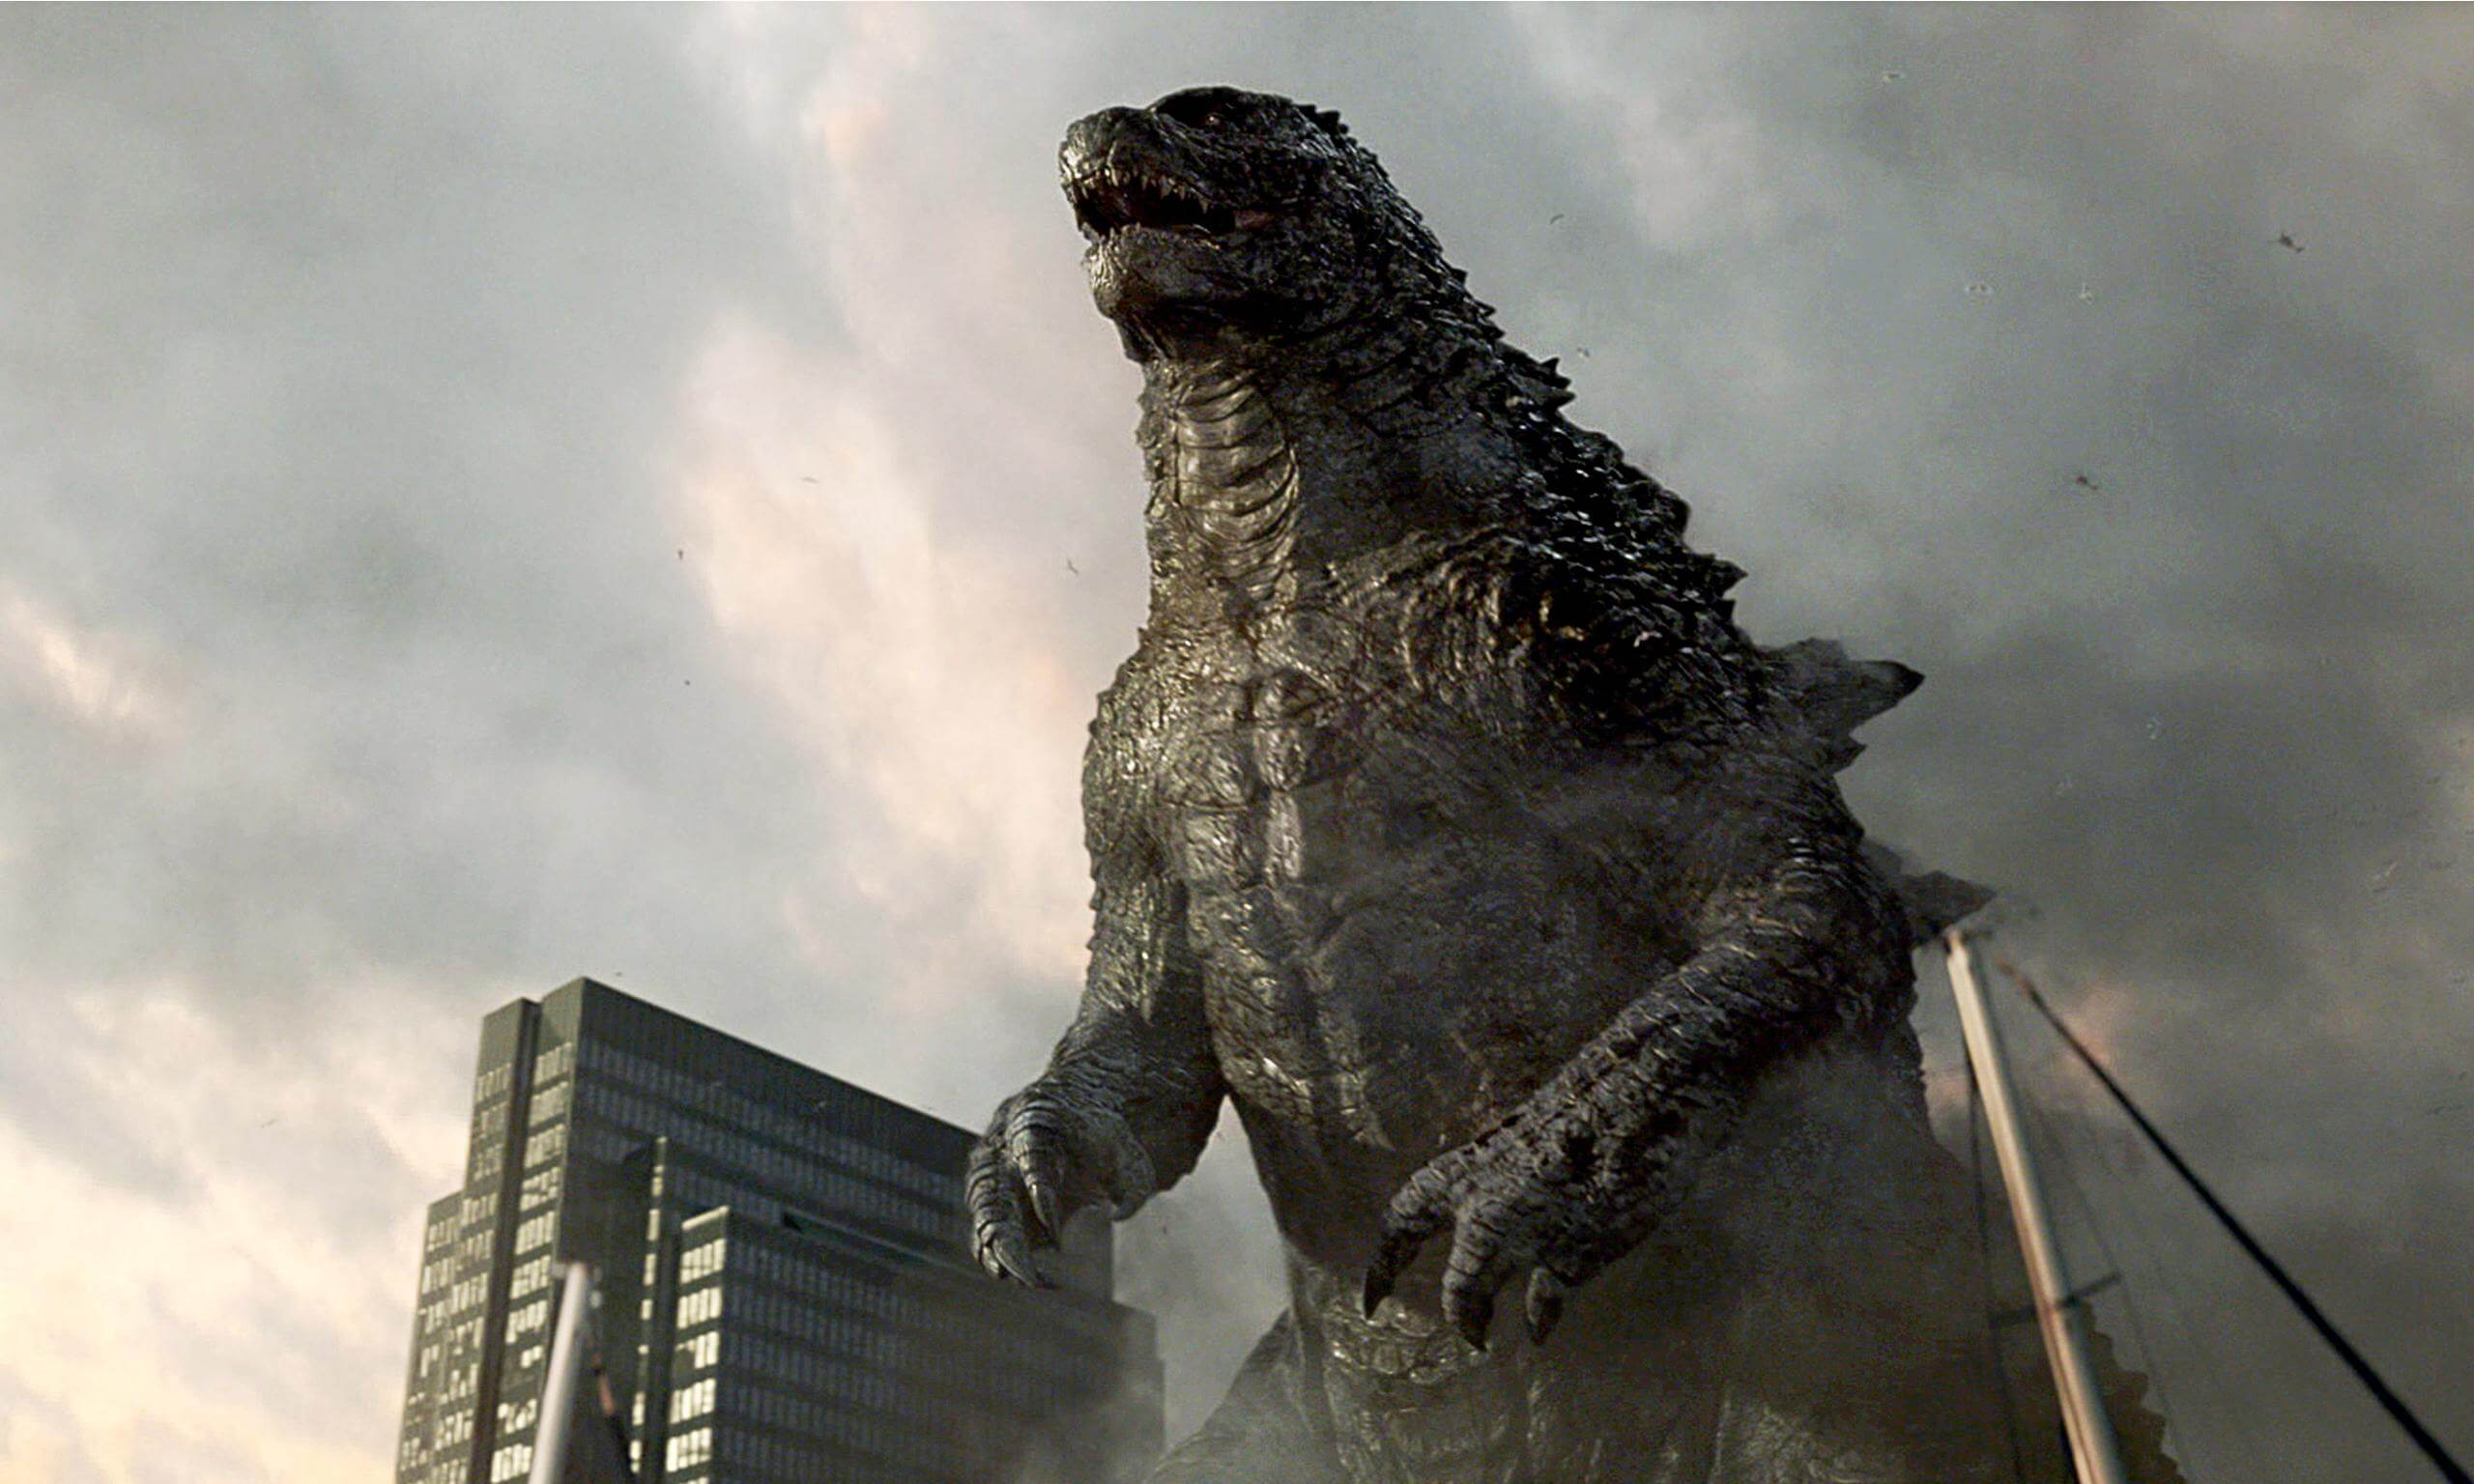 Godzilla 1 - Godzilla: King of the Monsters - Tom Woodruff, Jr., Working on Film; Practical Monster FX Inbound